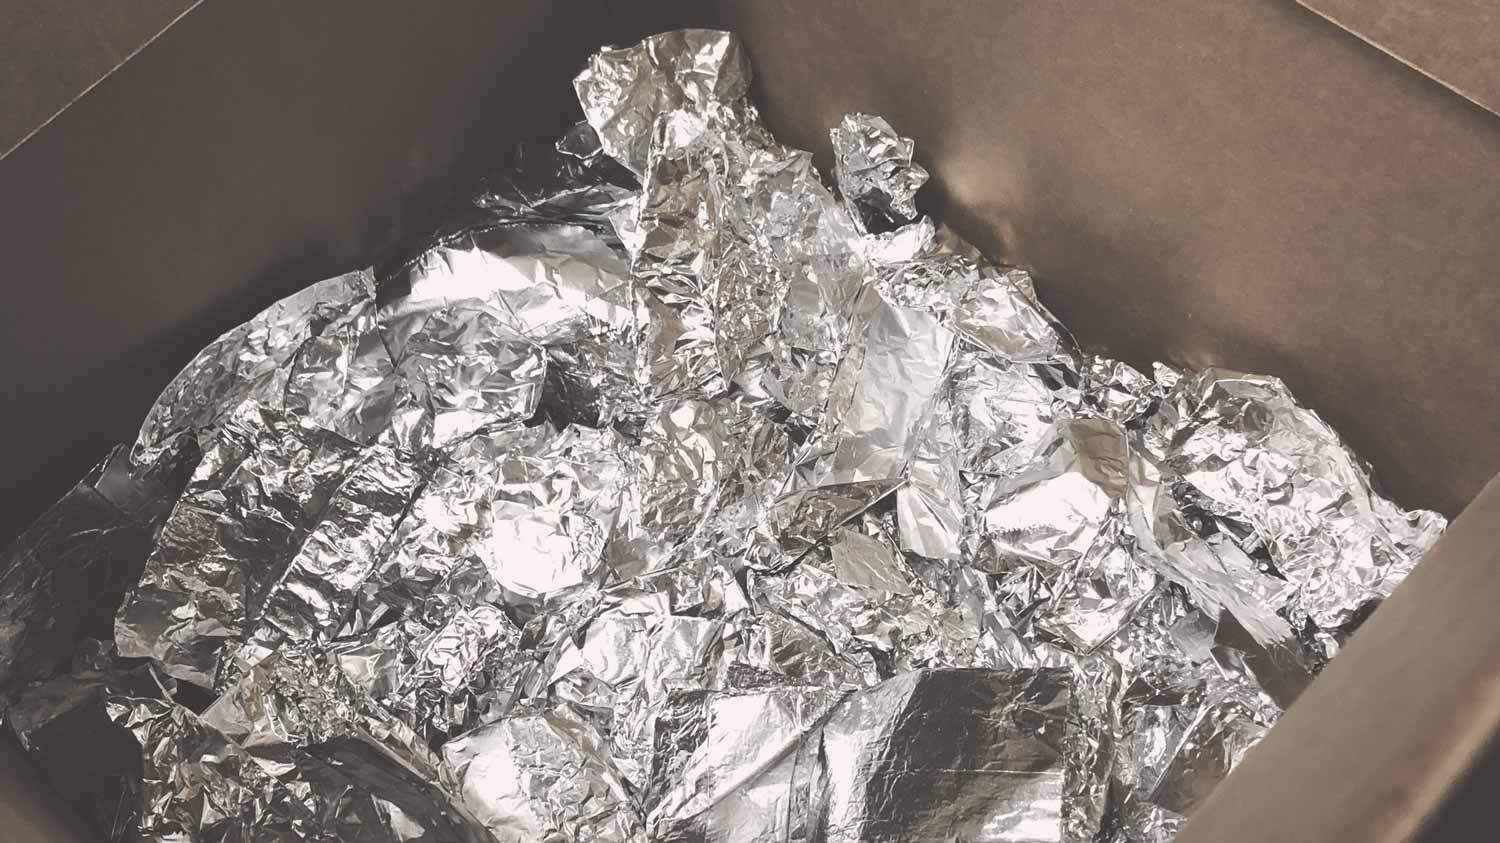 Foil to be recycled at Austin Hair Salon Keith Kristofer